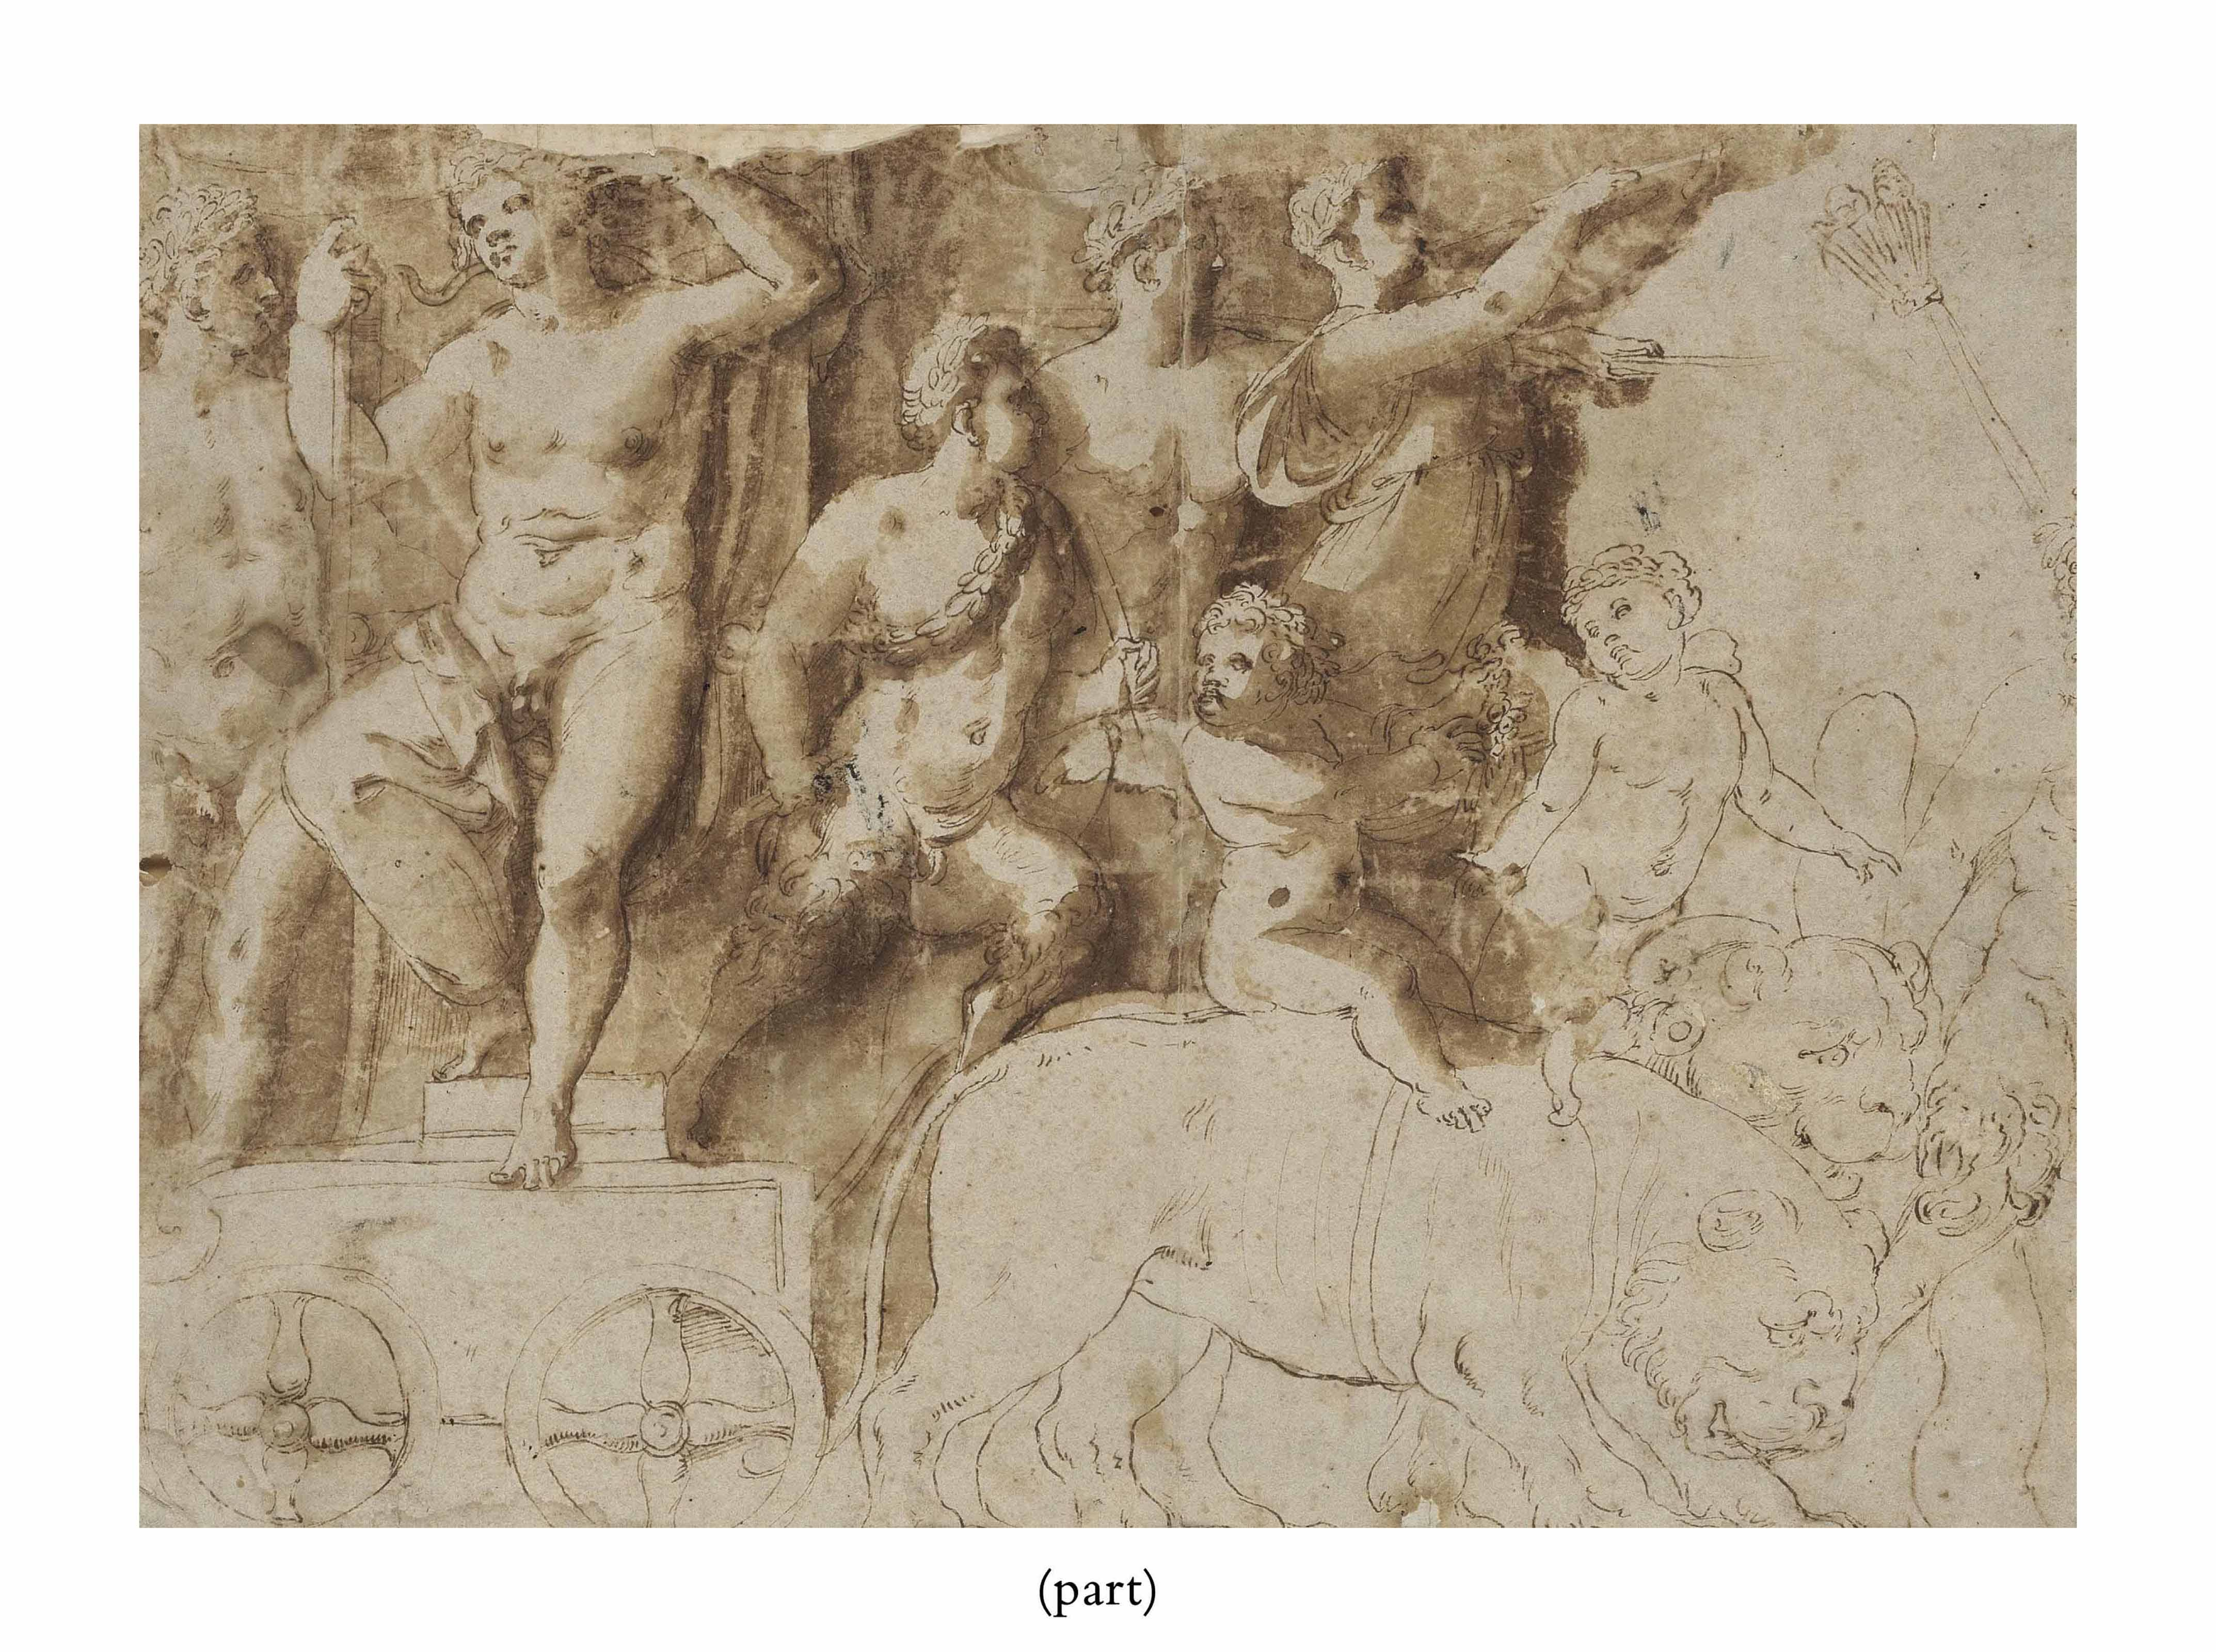 Bacchus, on a triumphal car drawn by lions, a satyr and other figures, all heads wreathed